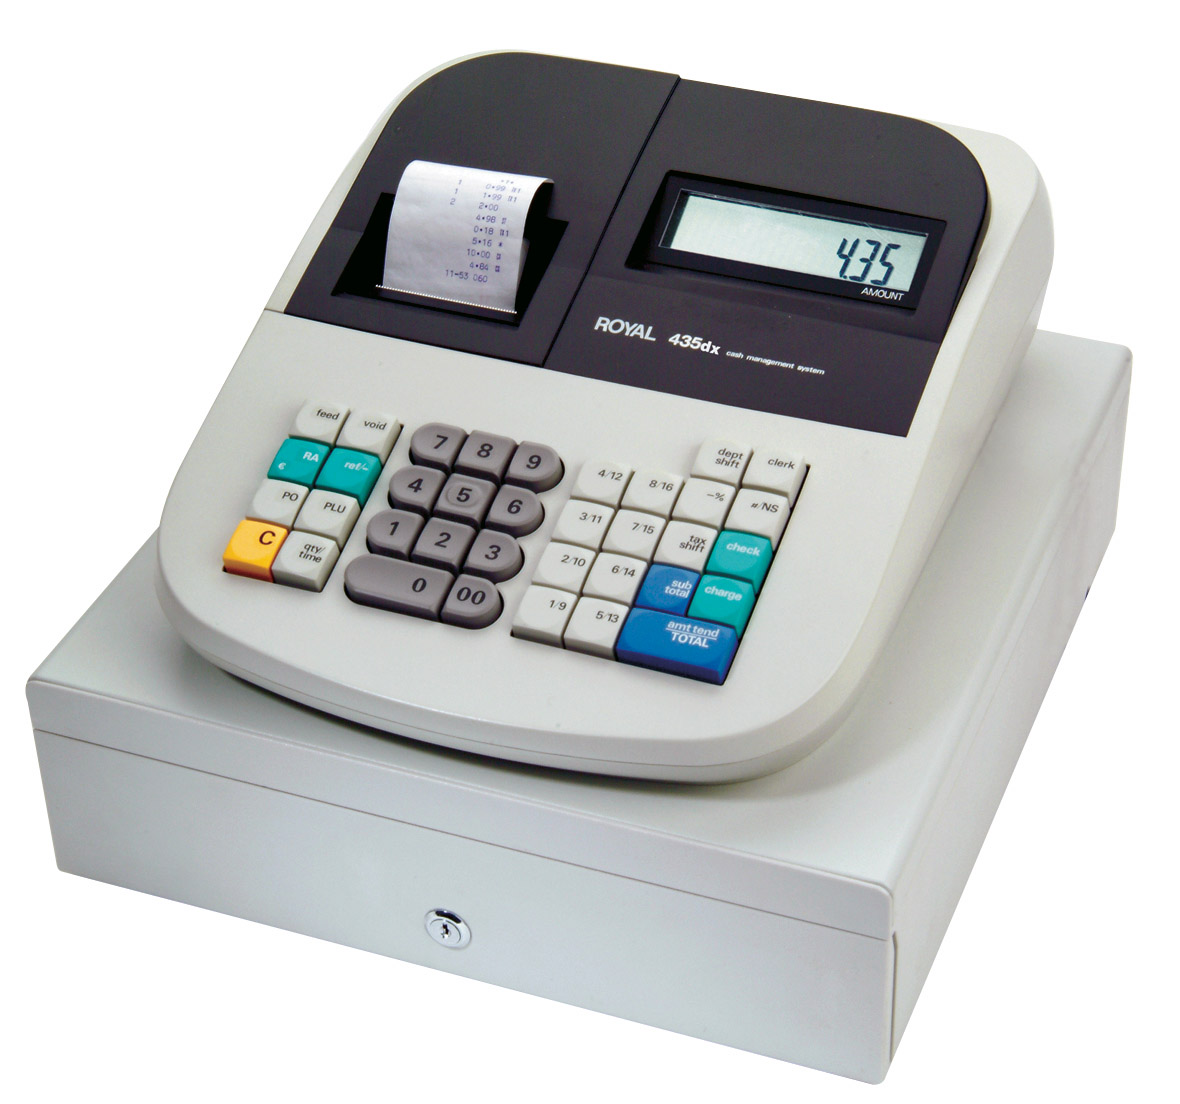 royal-435-dx-cash-register-with-16-departments-800-plus-refurbished